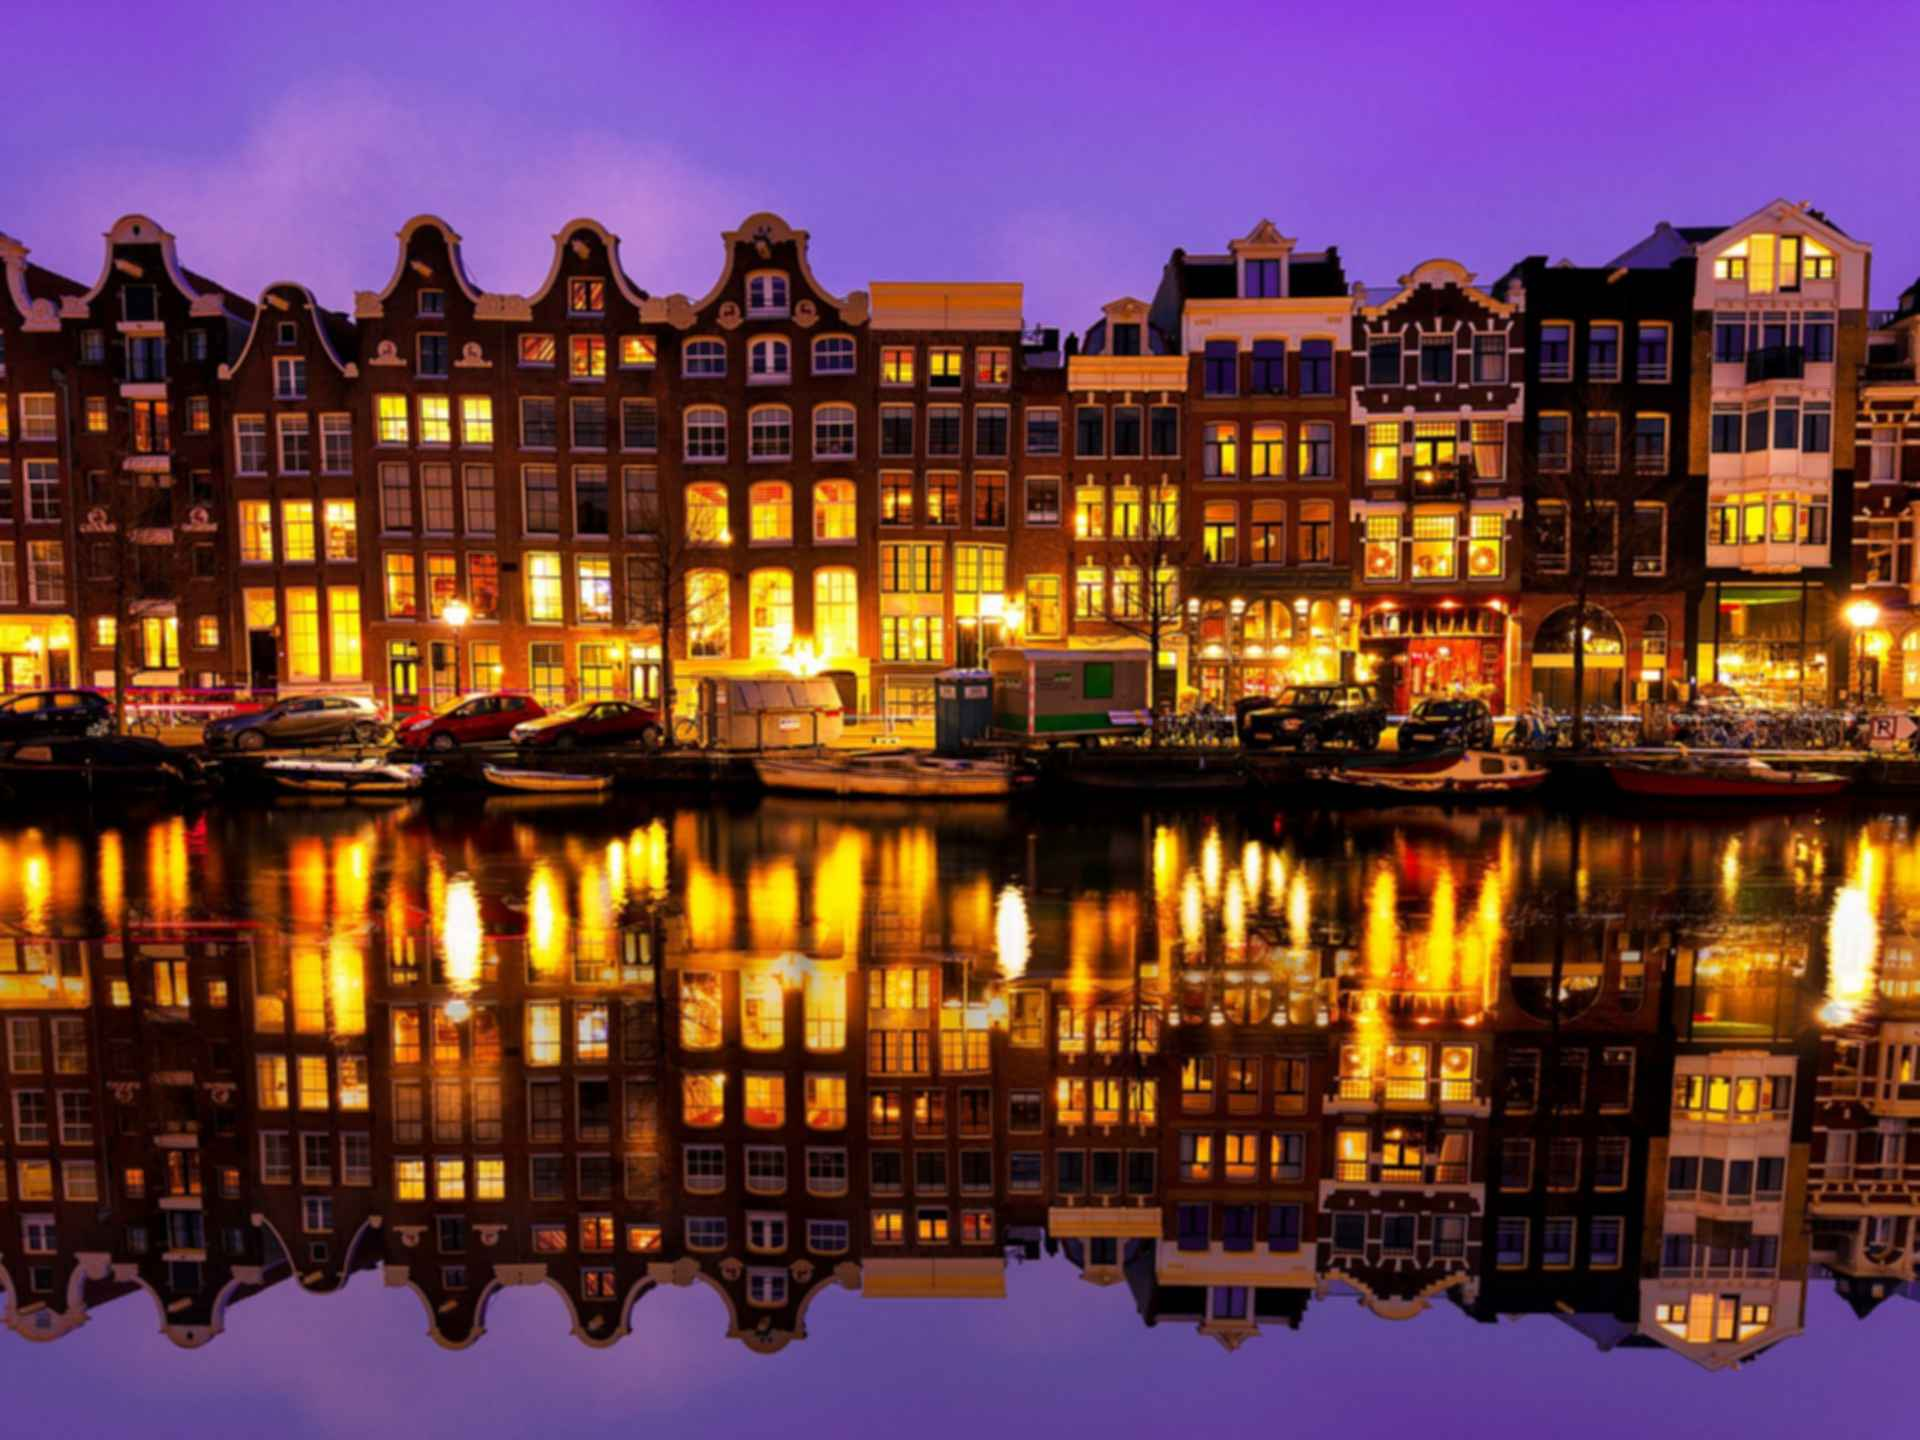 Amsterdam Canal Houses - at Dusk